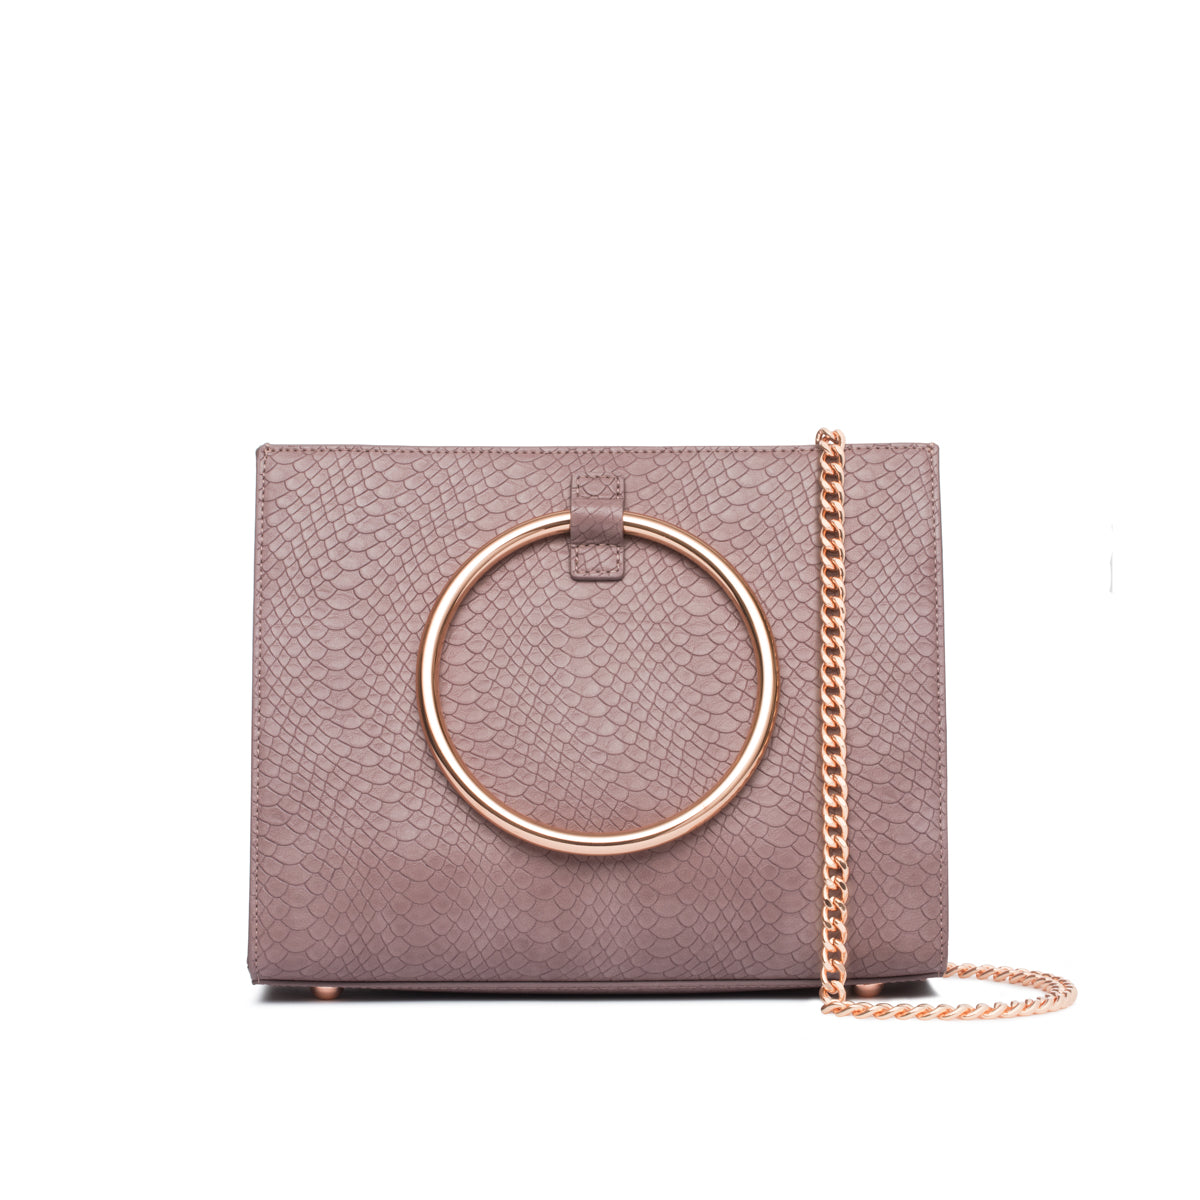 Sac à main Moda (Mauve/Rose Gold)